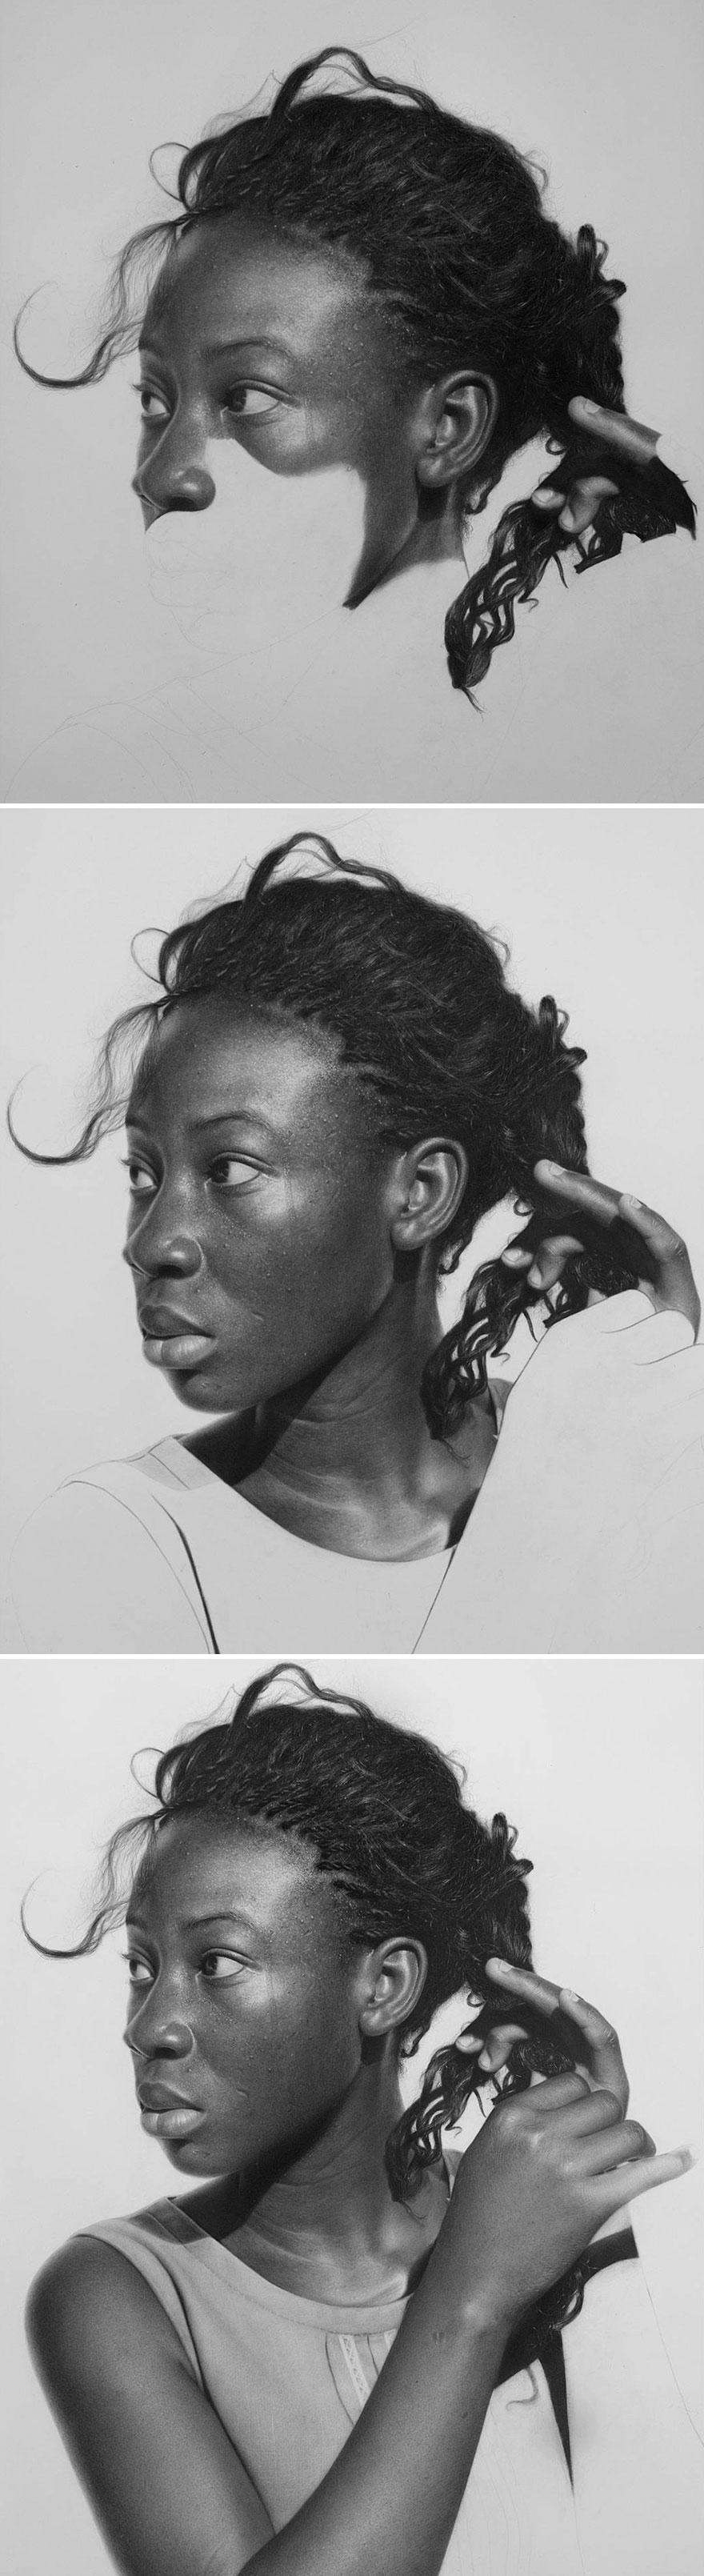 hyperrealism-pencil-portraits-arinze-stanley-3-58d28c05a620b__880-2